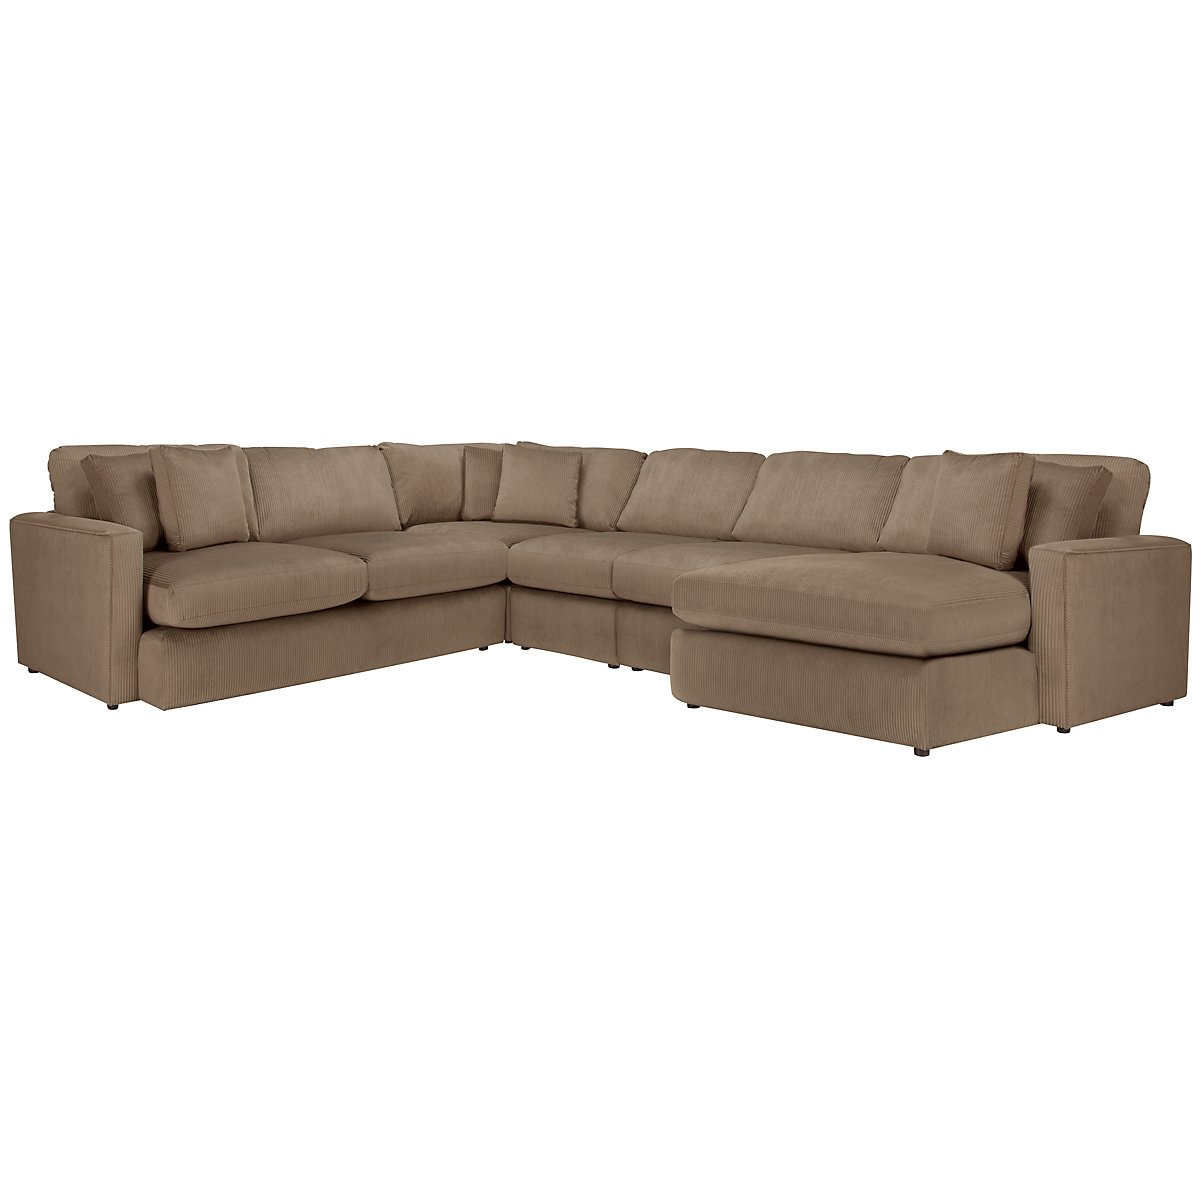 Tara2 Dark Taupe Microfiber Right Chaise Sectional